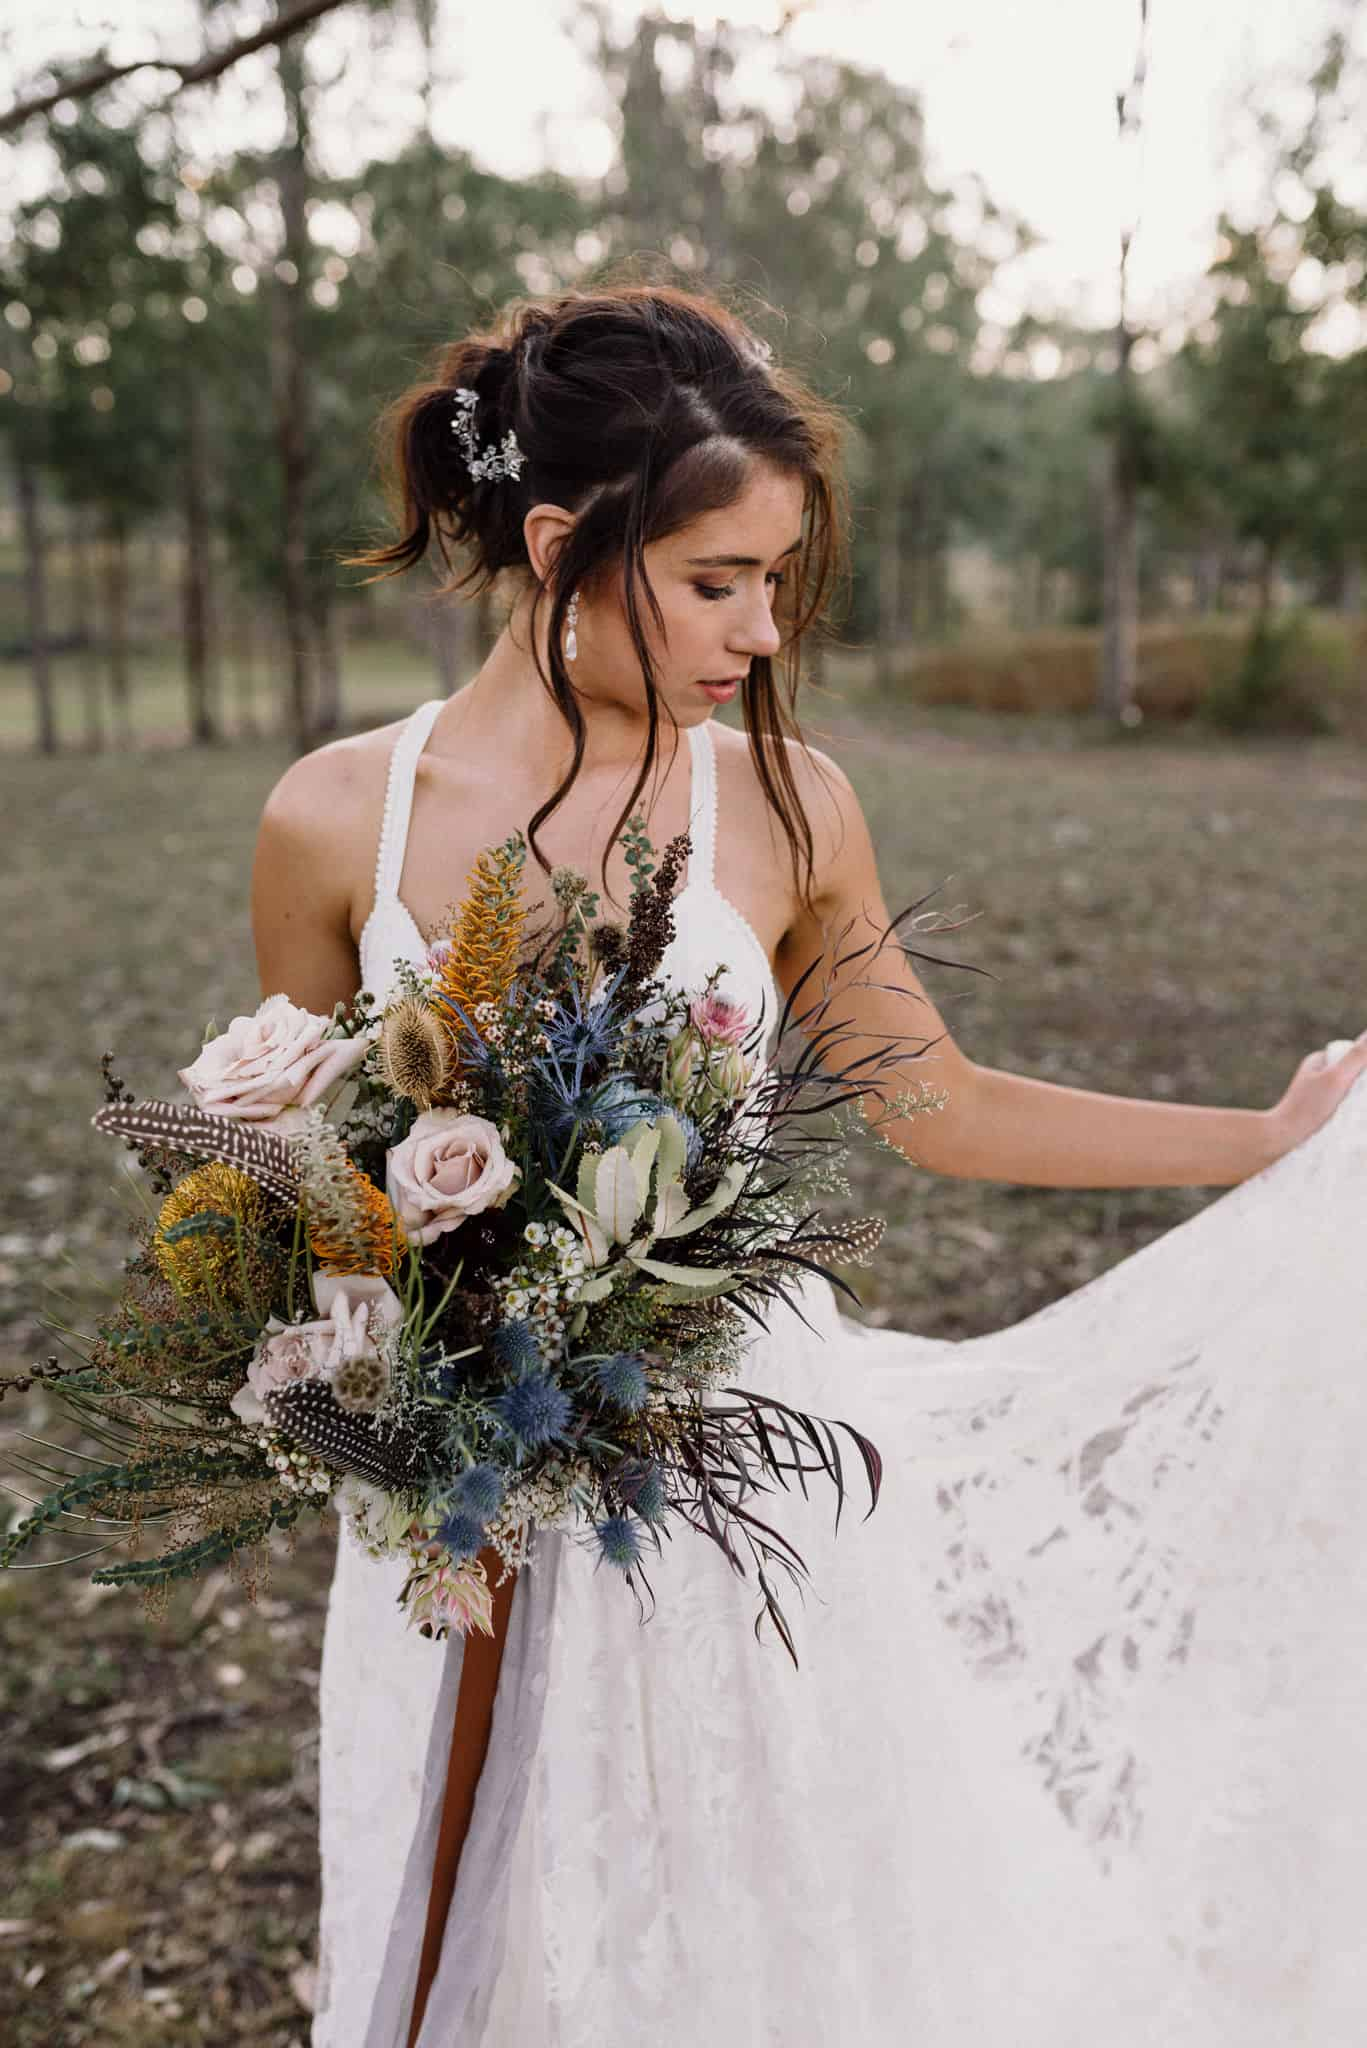 Bride portrait in the grounds of Estate Tuscany Bride playing with dress train while holding bouquet Captured by James White Hunter Valley Wedding Photographer